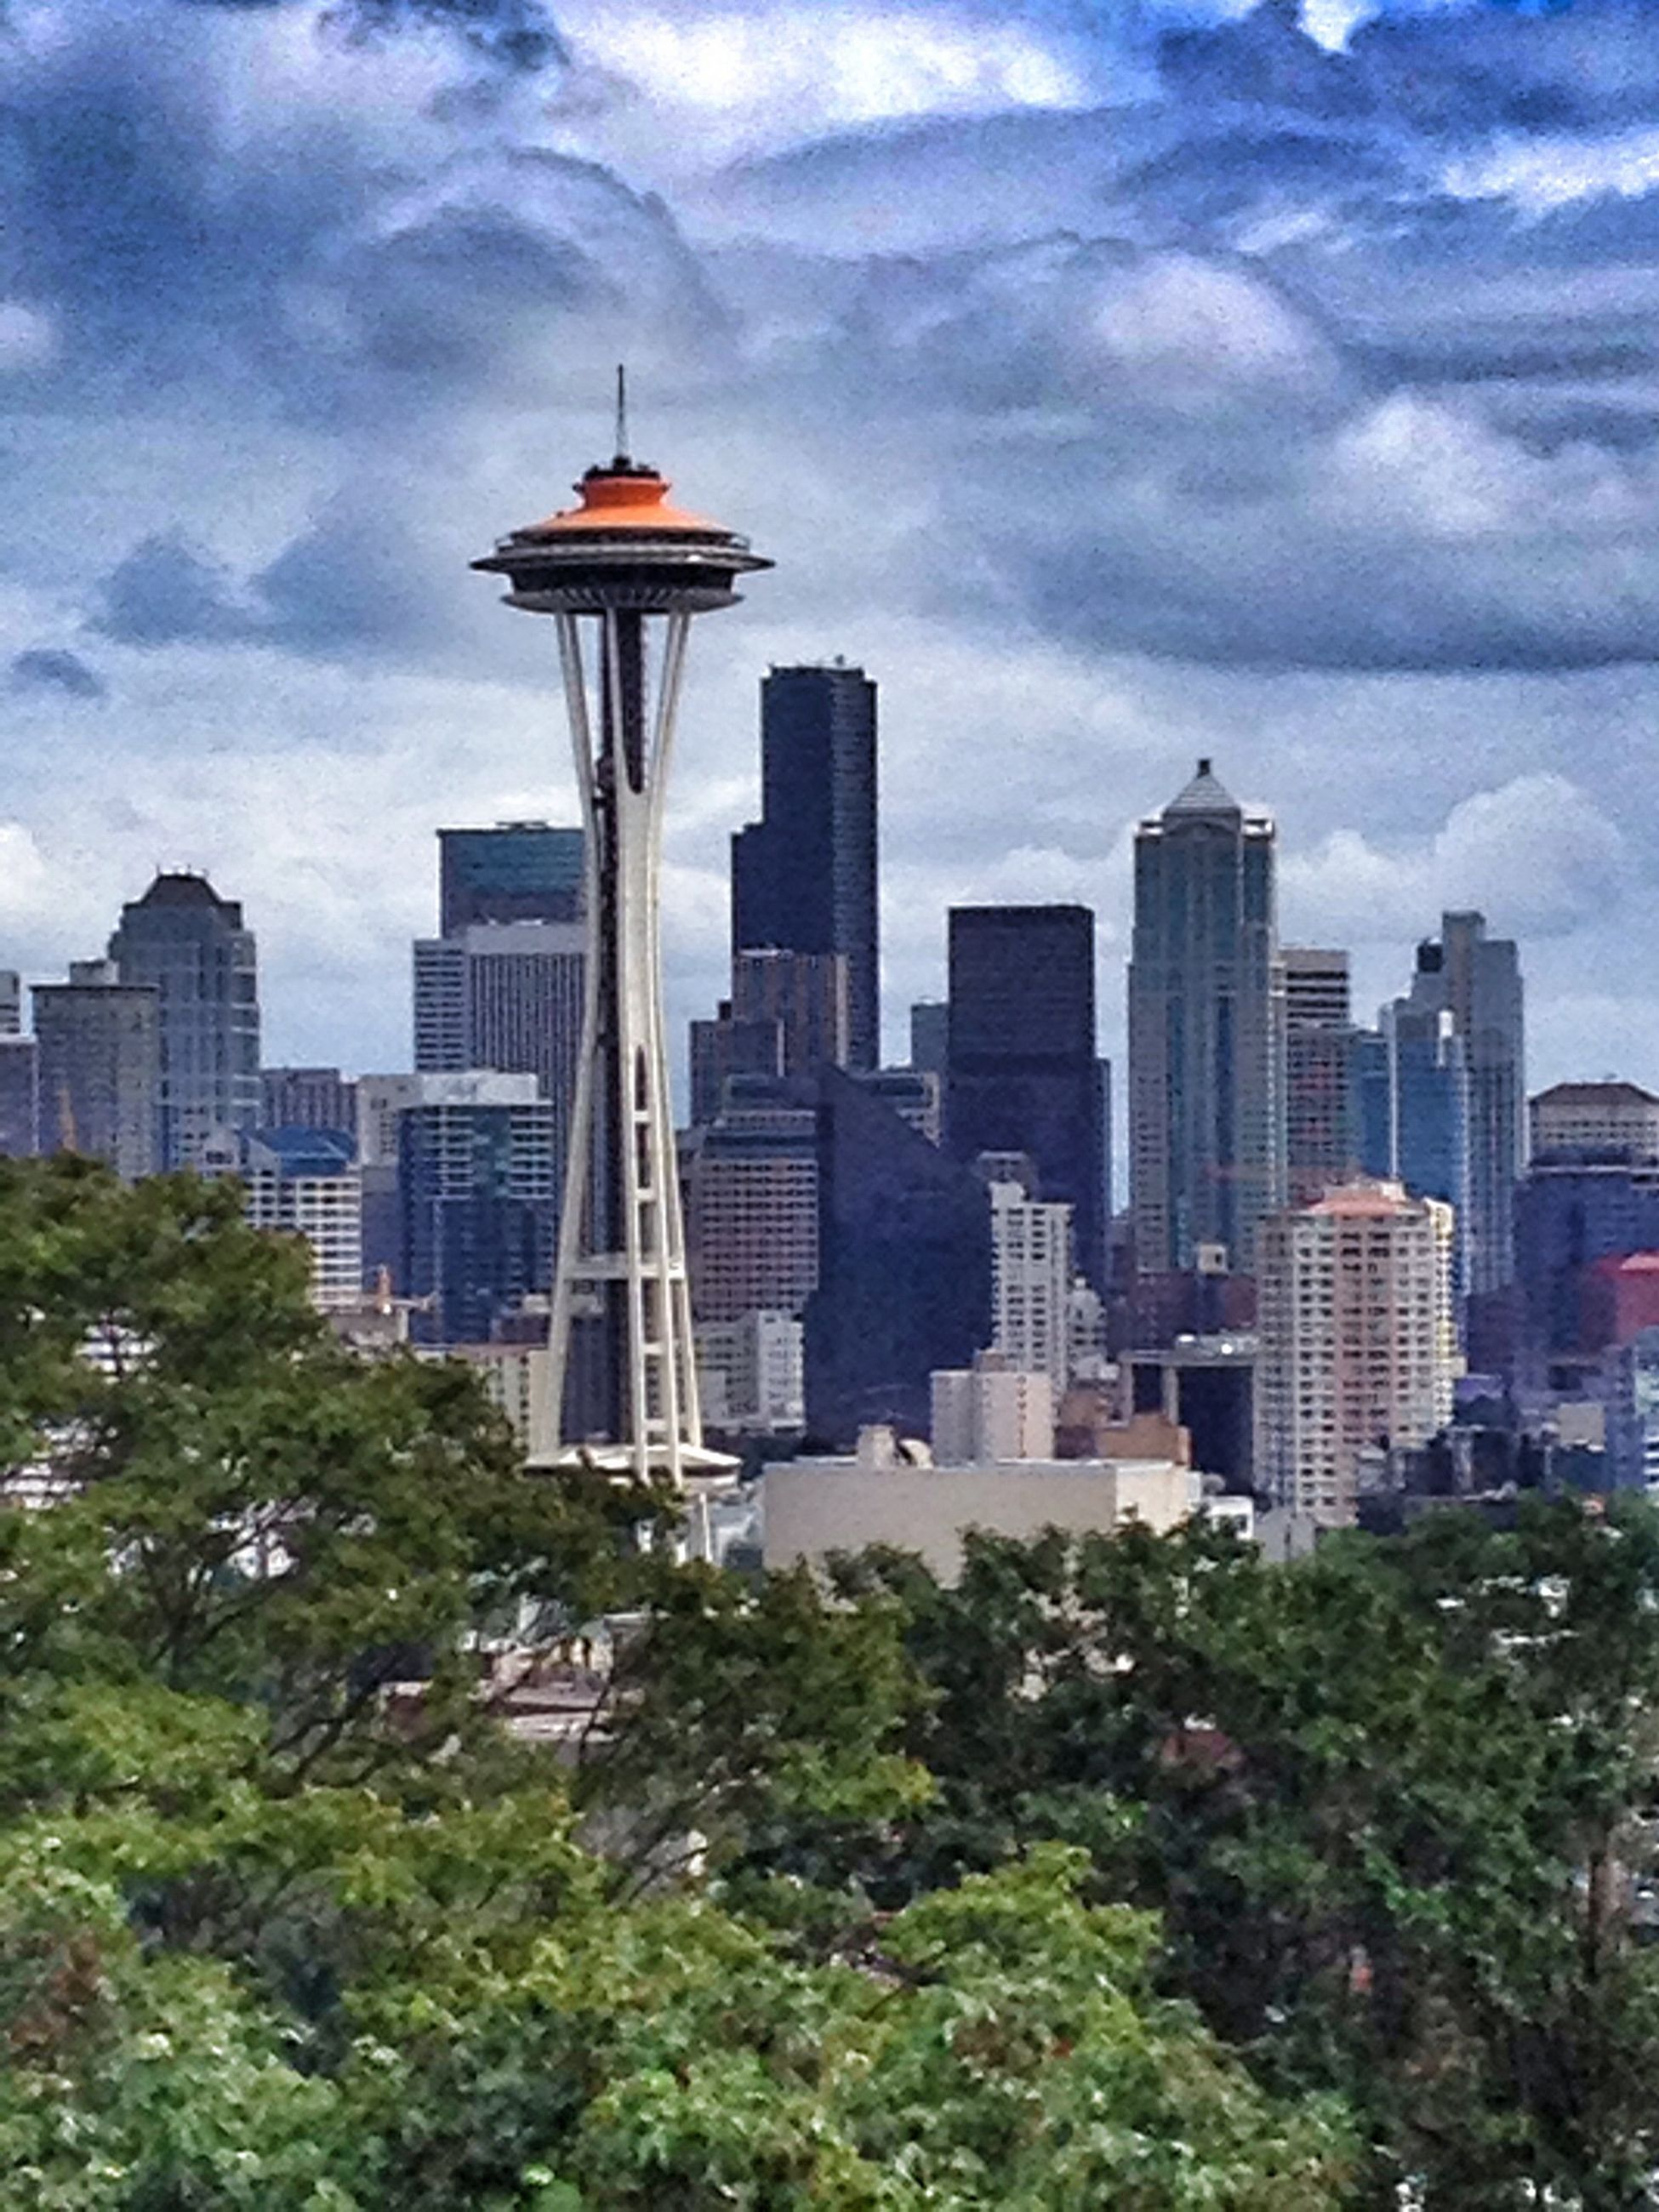 building exterior, architecture, city, built structure, skyscraper, tower, tall - high, sky, modern, cityscape, cloud - sky, office building, tree, urban skyline, capital cities, cloud, growth, cloudy, financial district, travel destinations